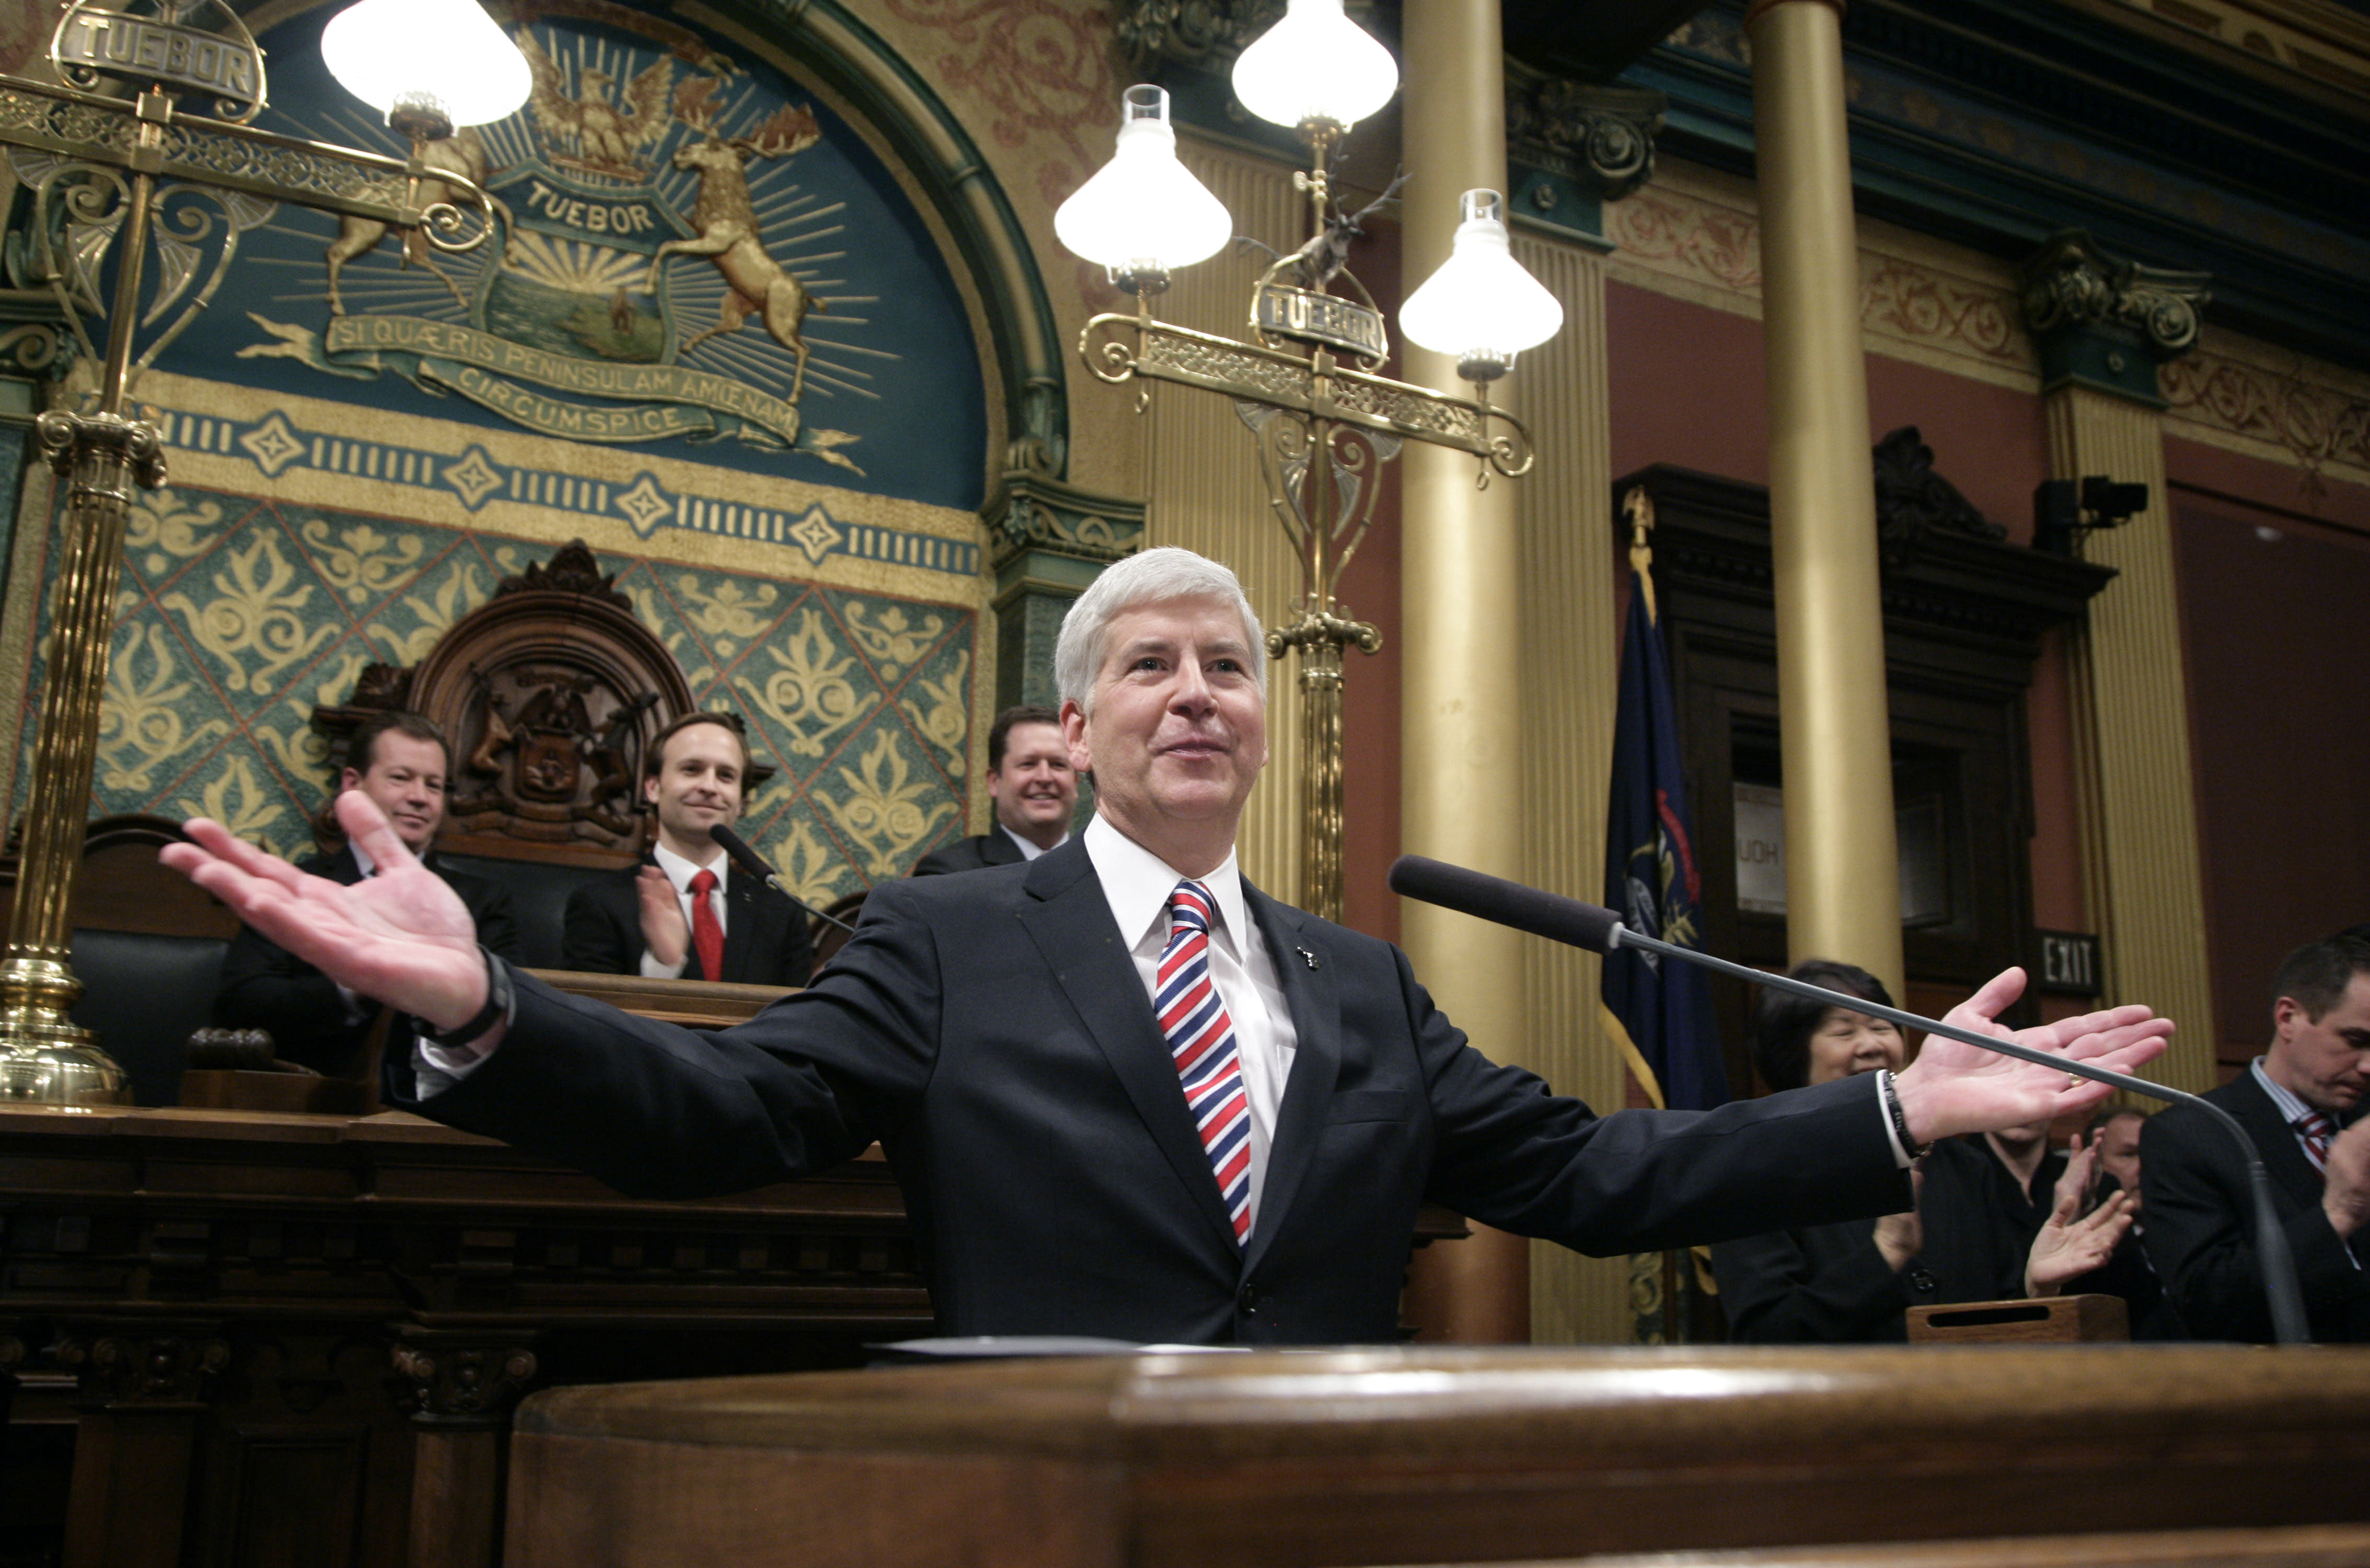 Policies of GOP governors could find national play